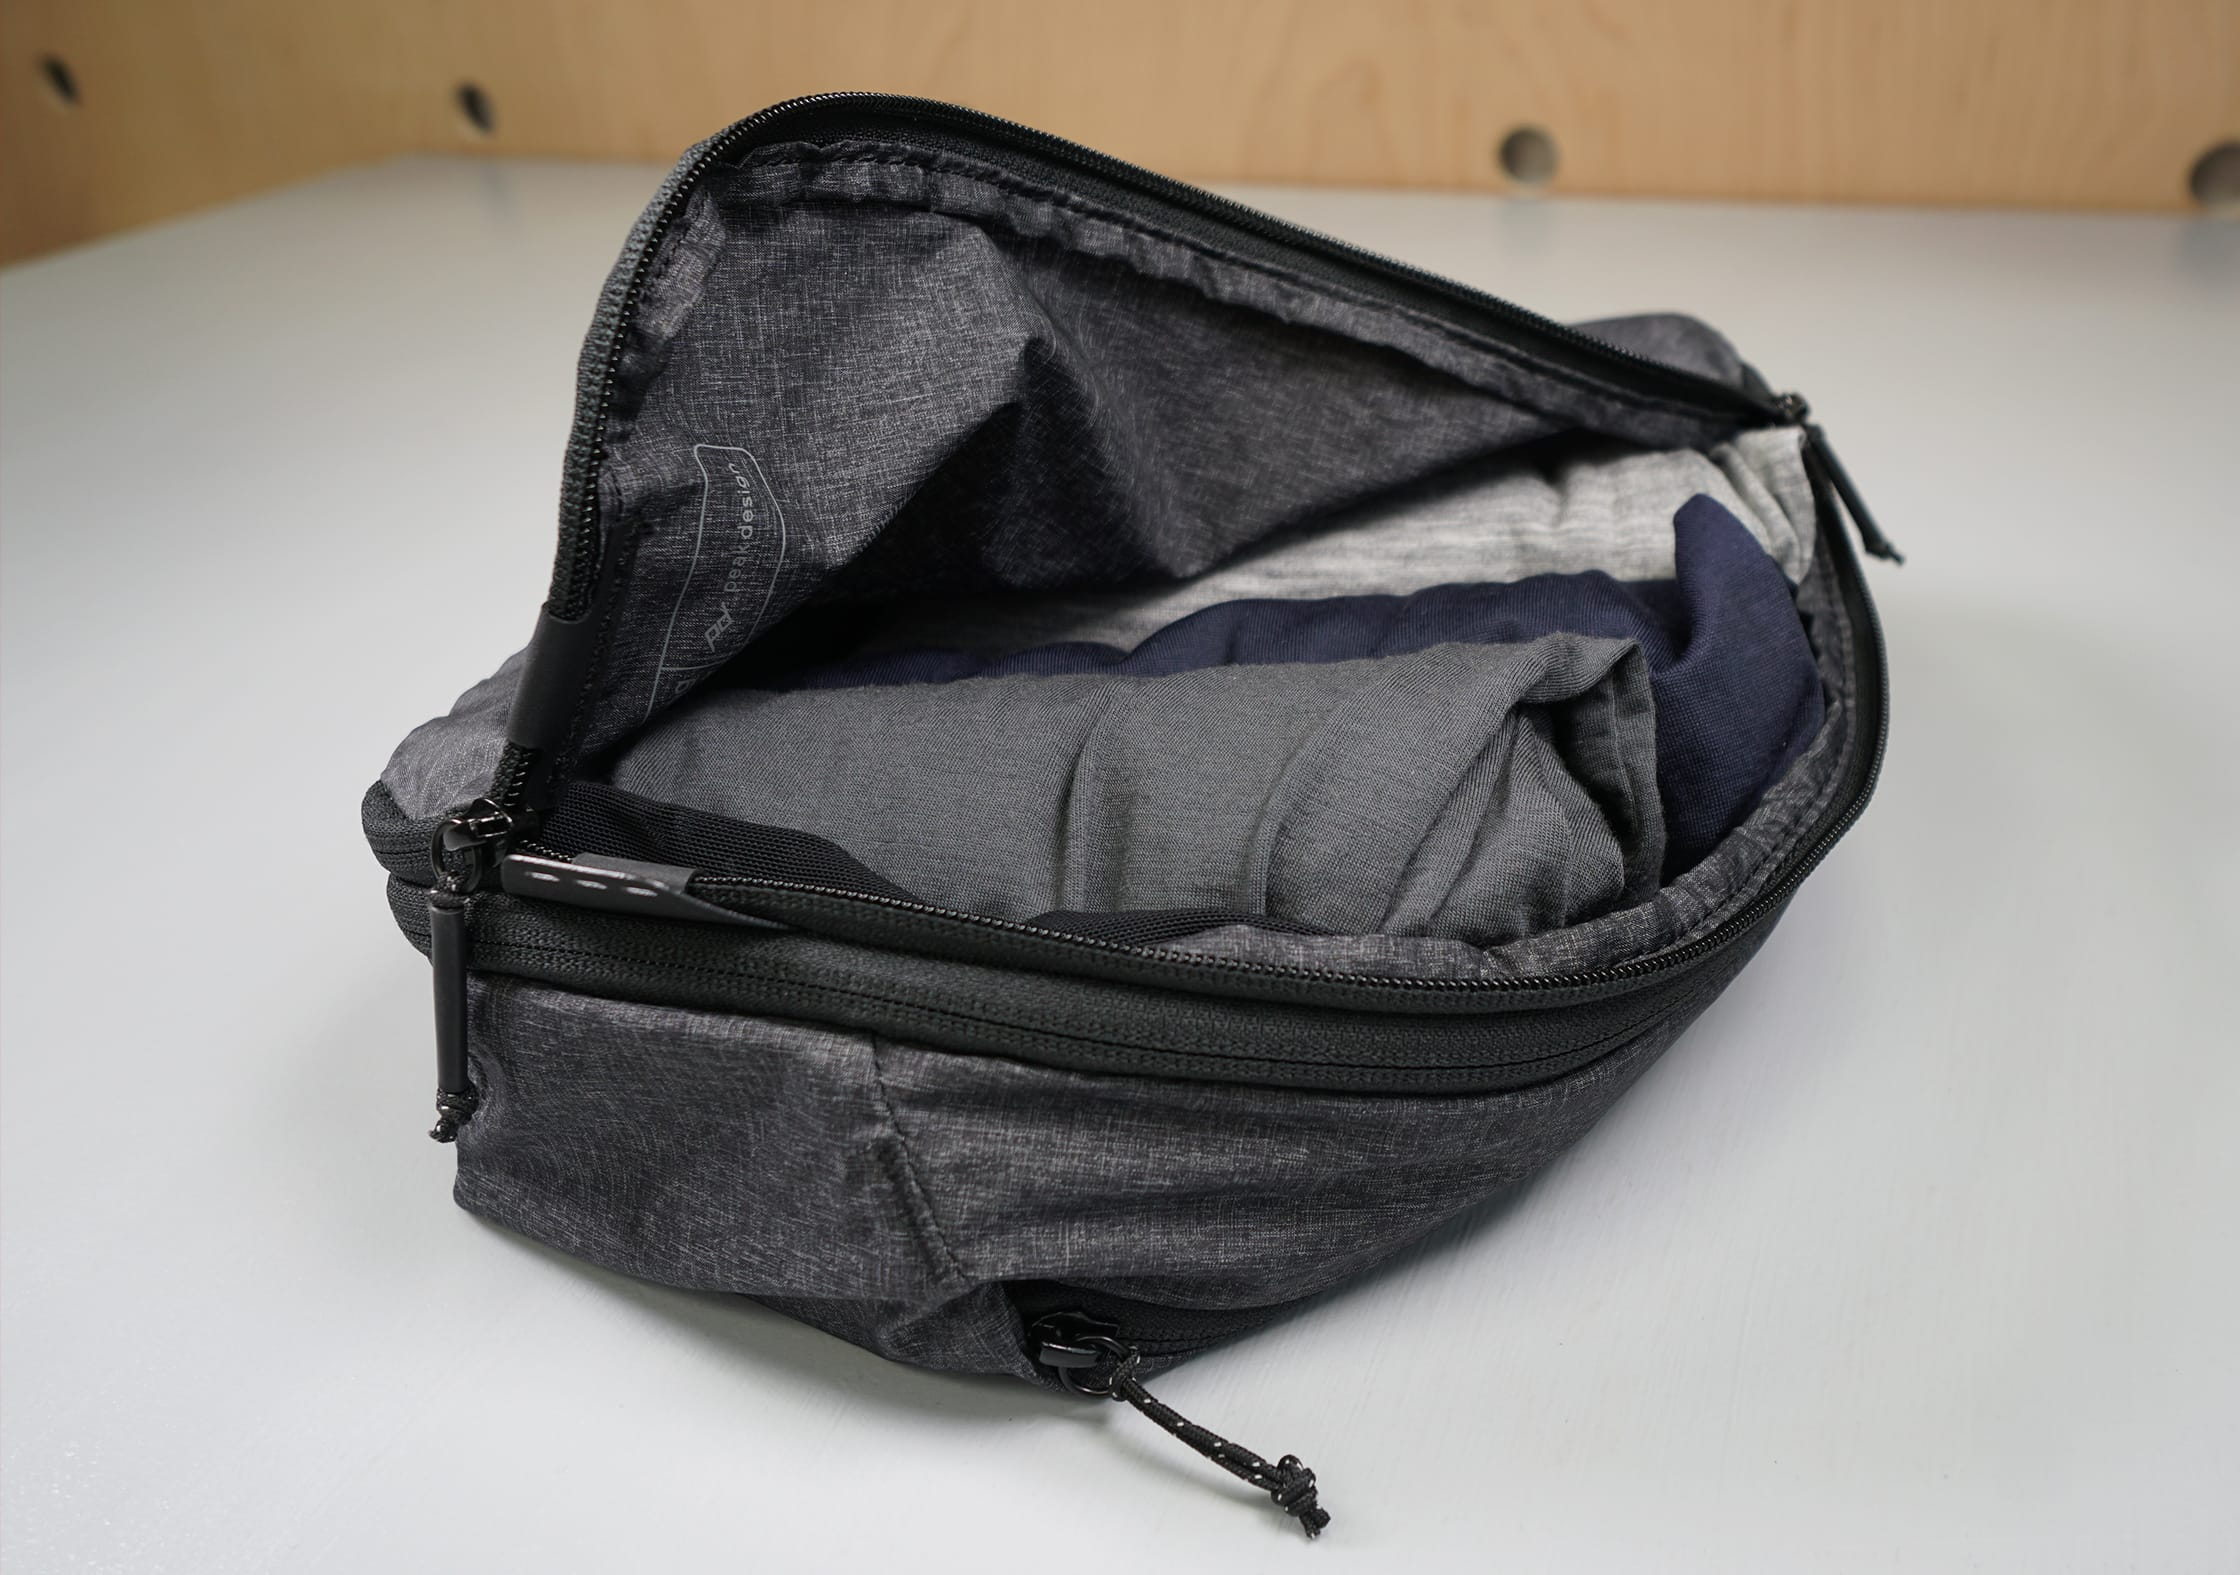 Peak Design Packing Cubes Quick Accessibility